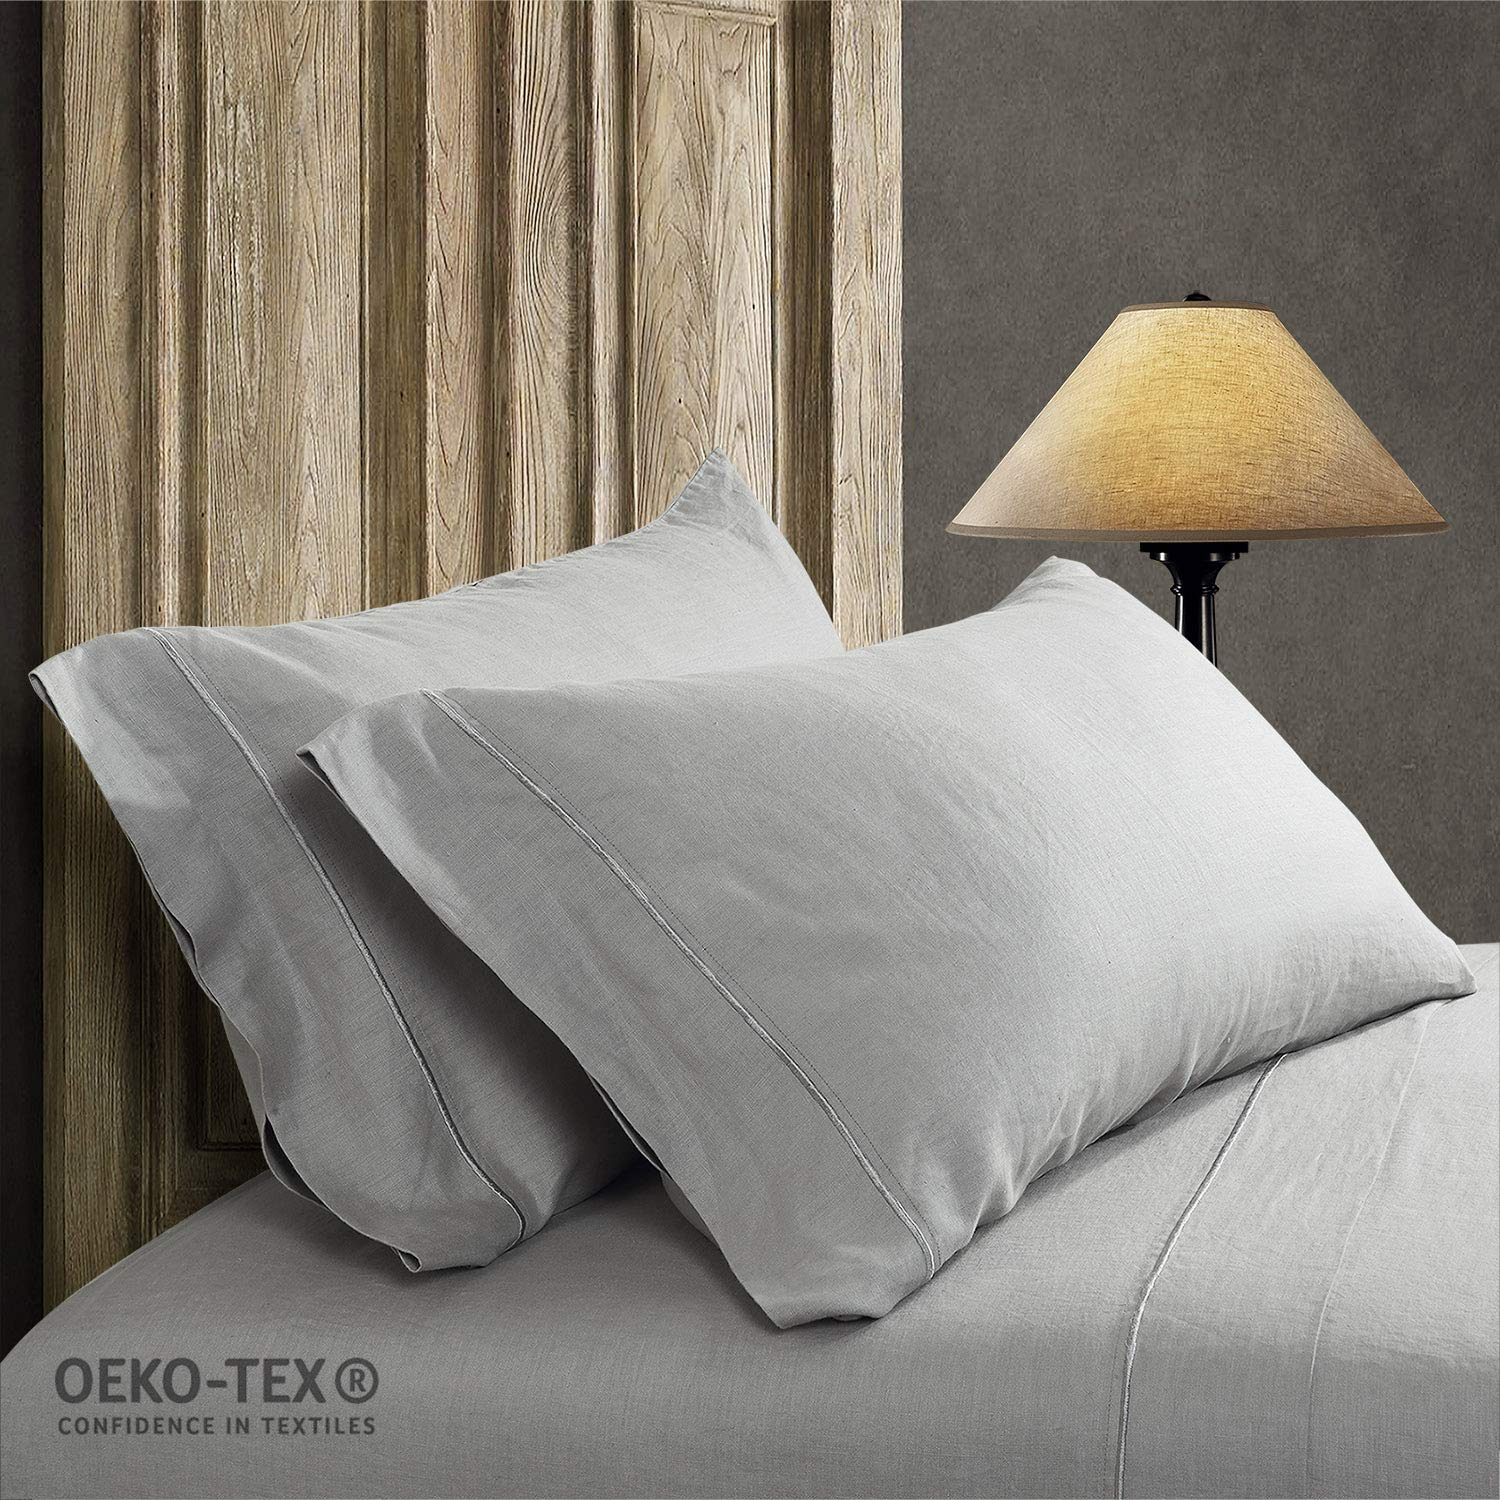 Simple&Opulence 100% Stone Washed Linen Embroidered Thread Solid 2 Pillowcase (King, Grey)